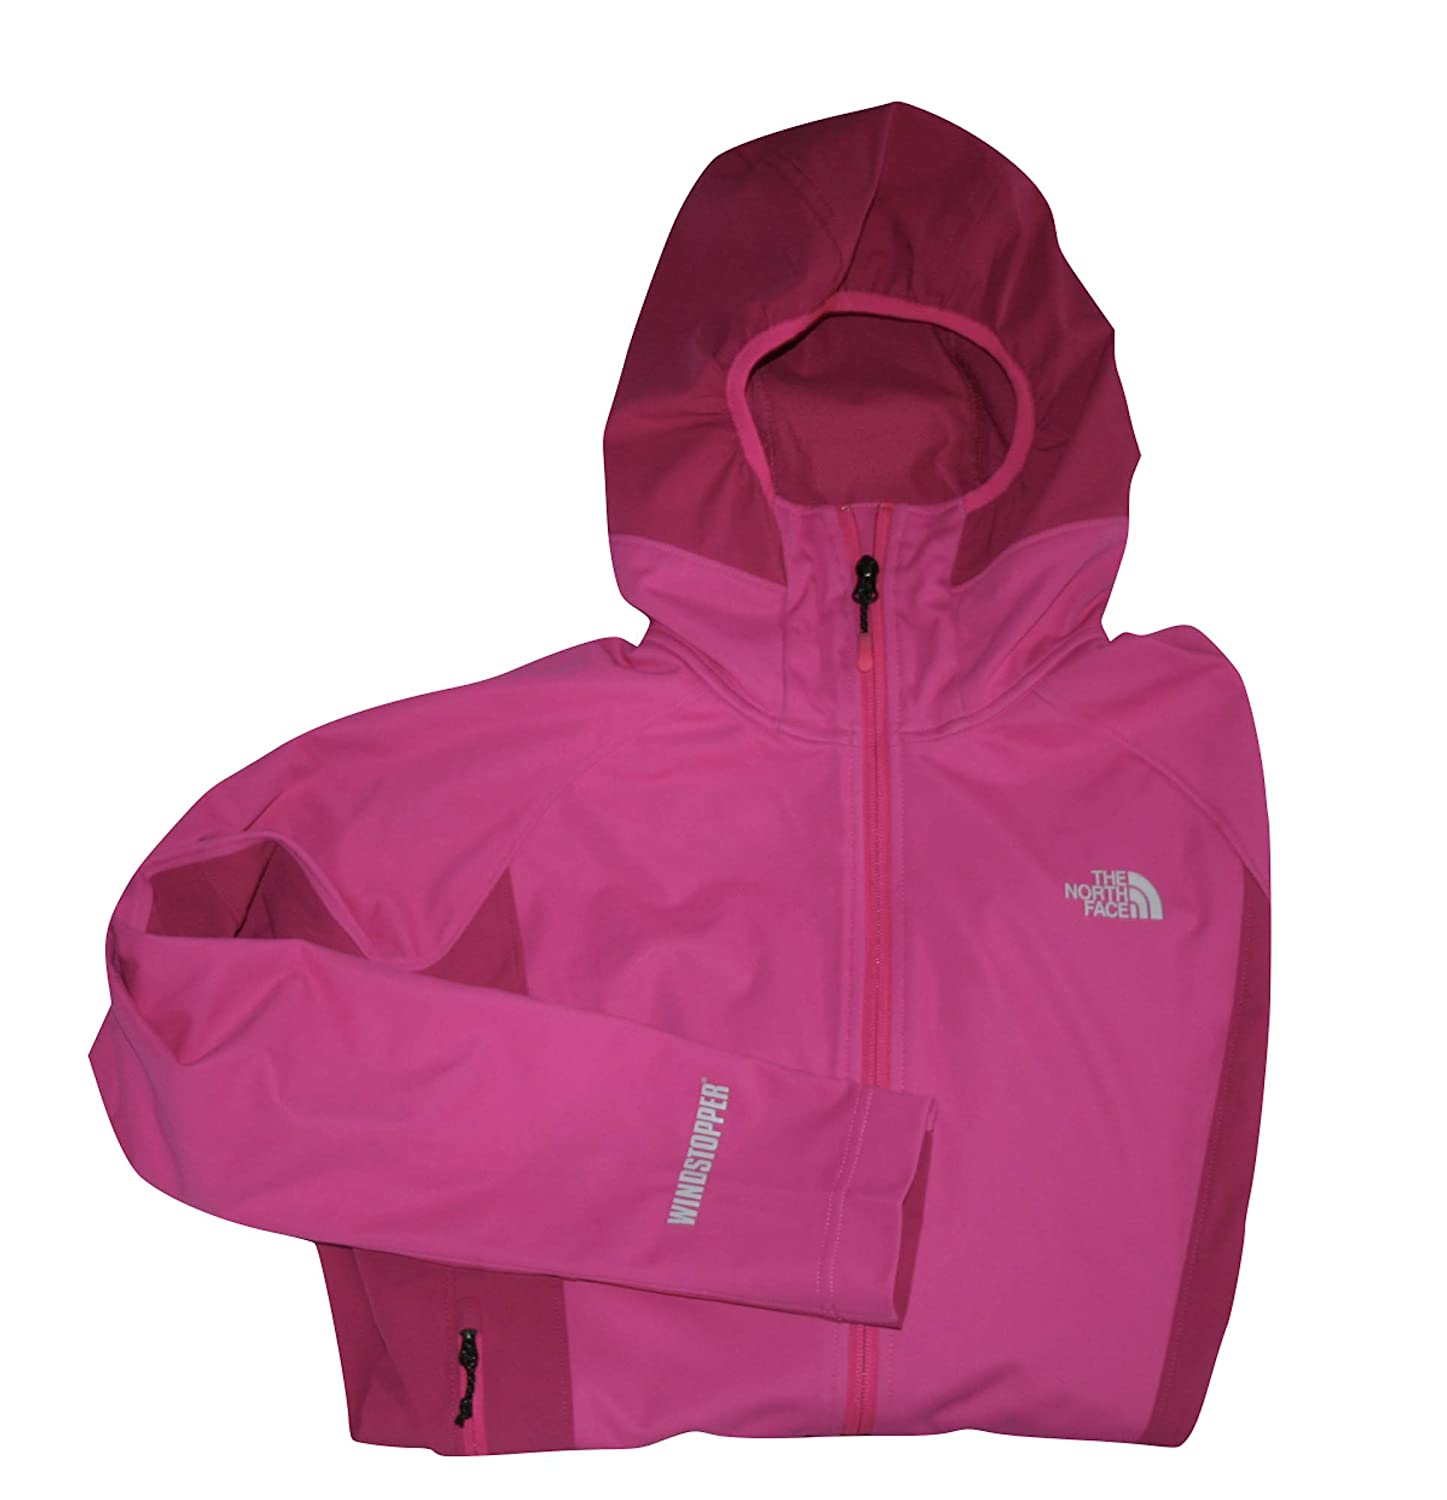 ac3eb9c0d The North Face Women's Hoodie Alpine Project Soft Shell Jacket ...